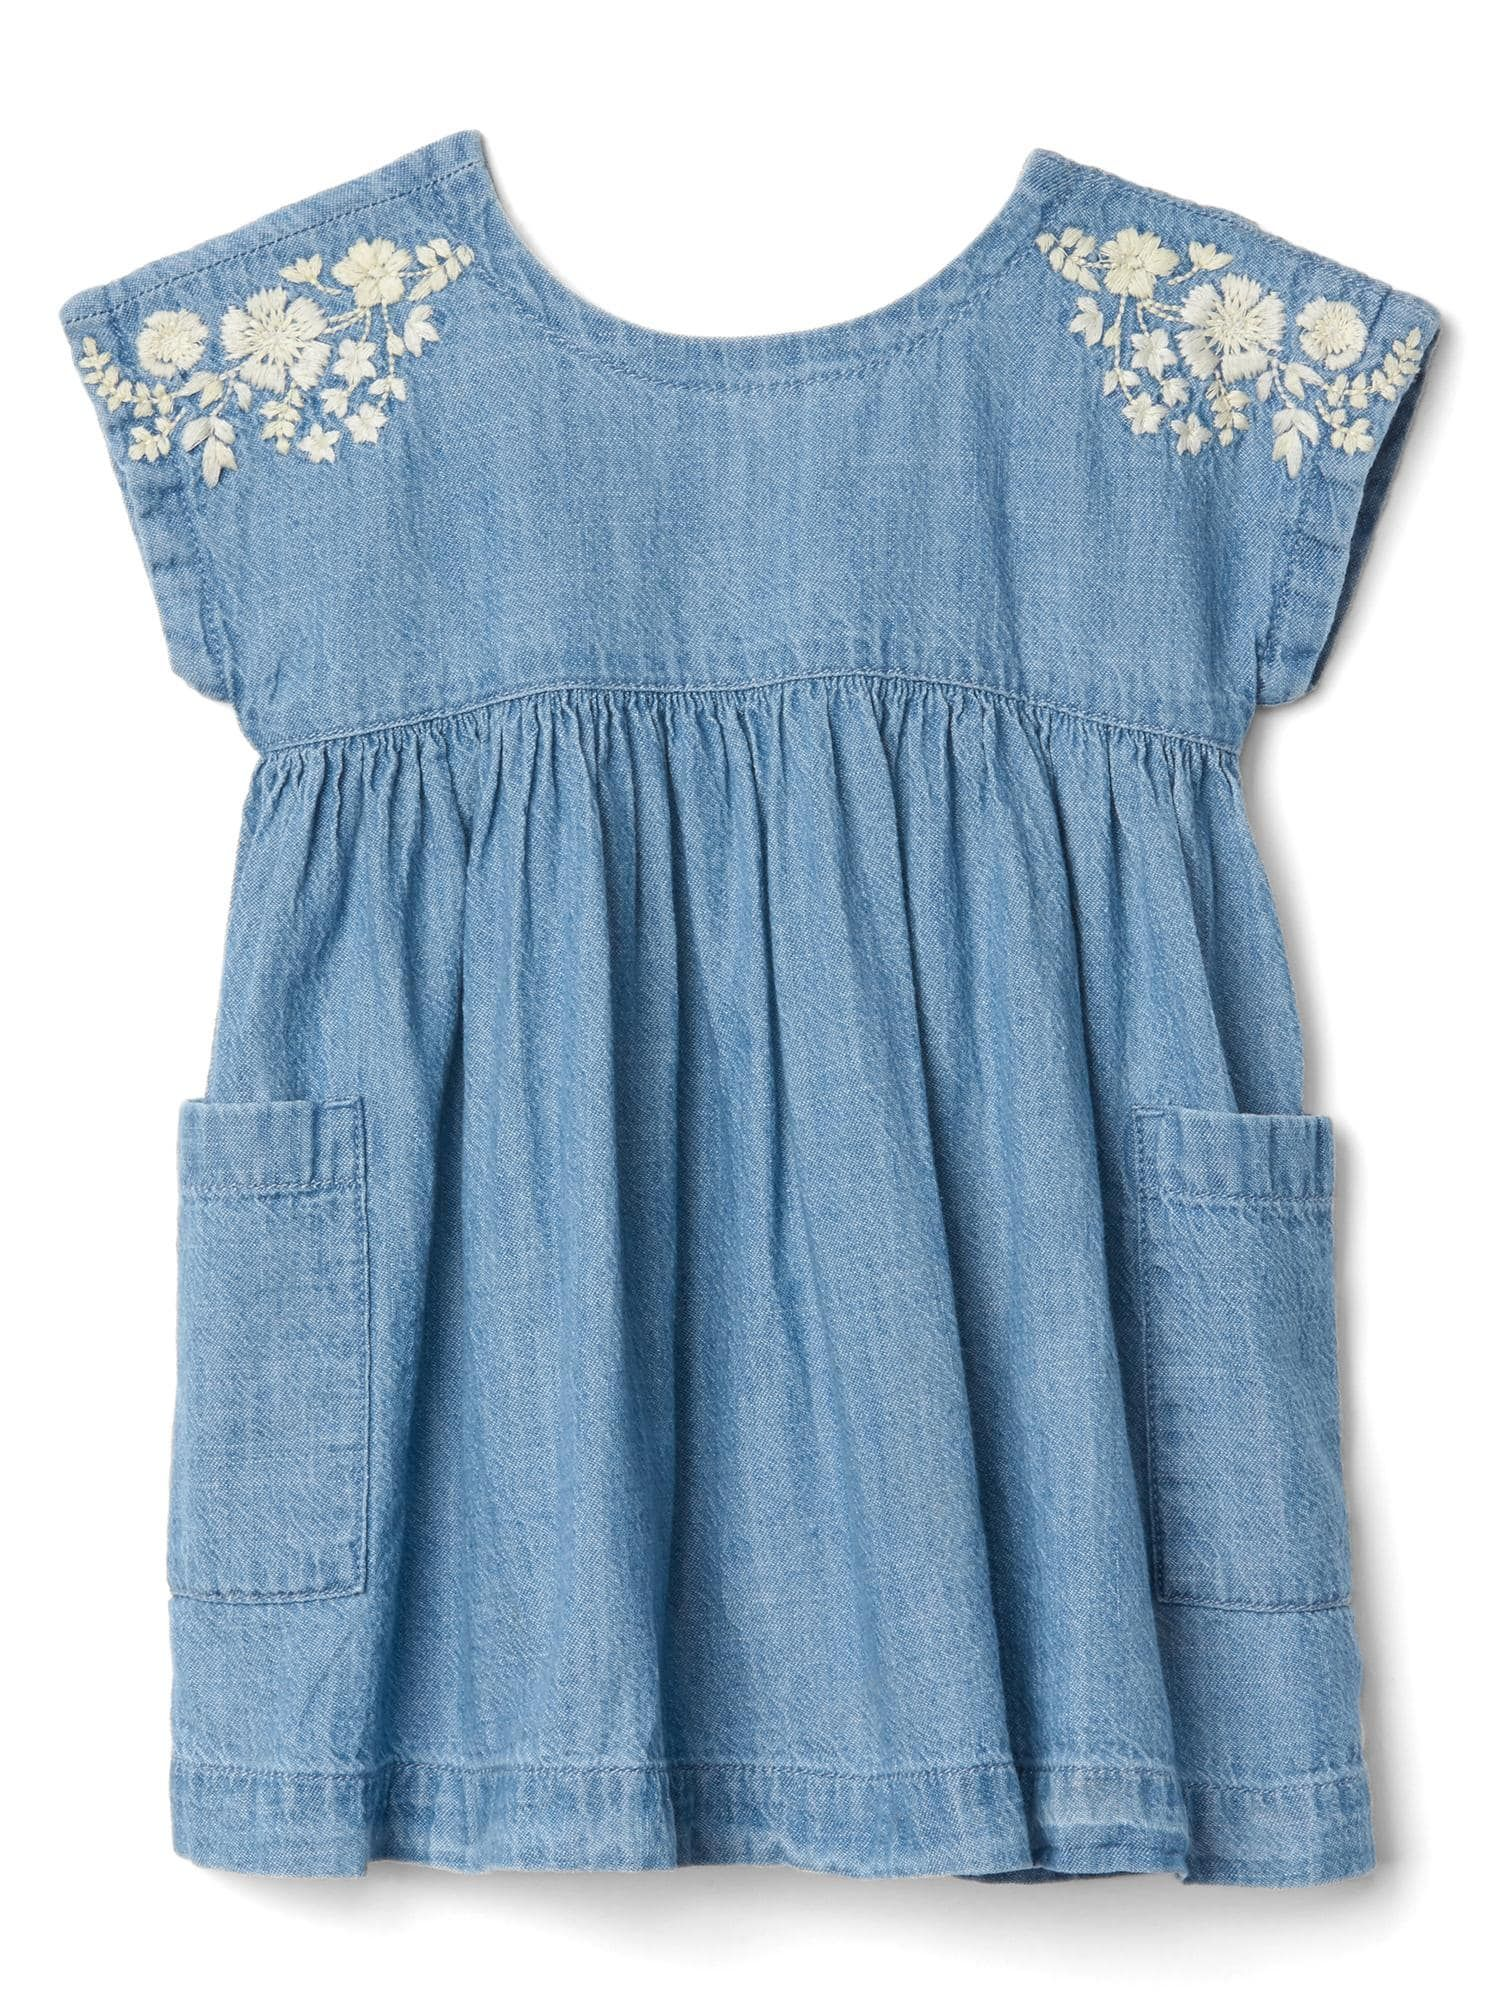 Floral Embroidery Chambray Baby Dress Gap